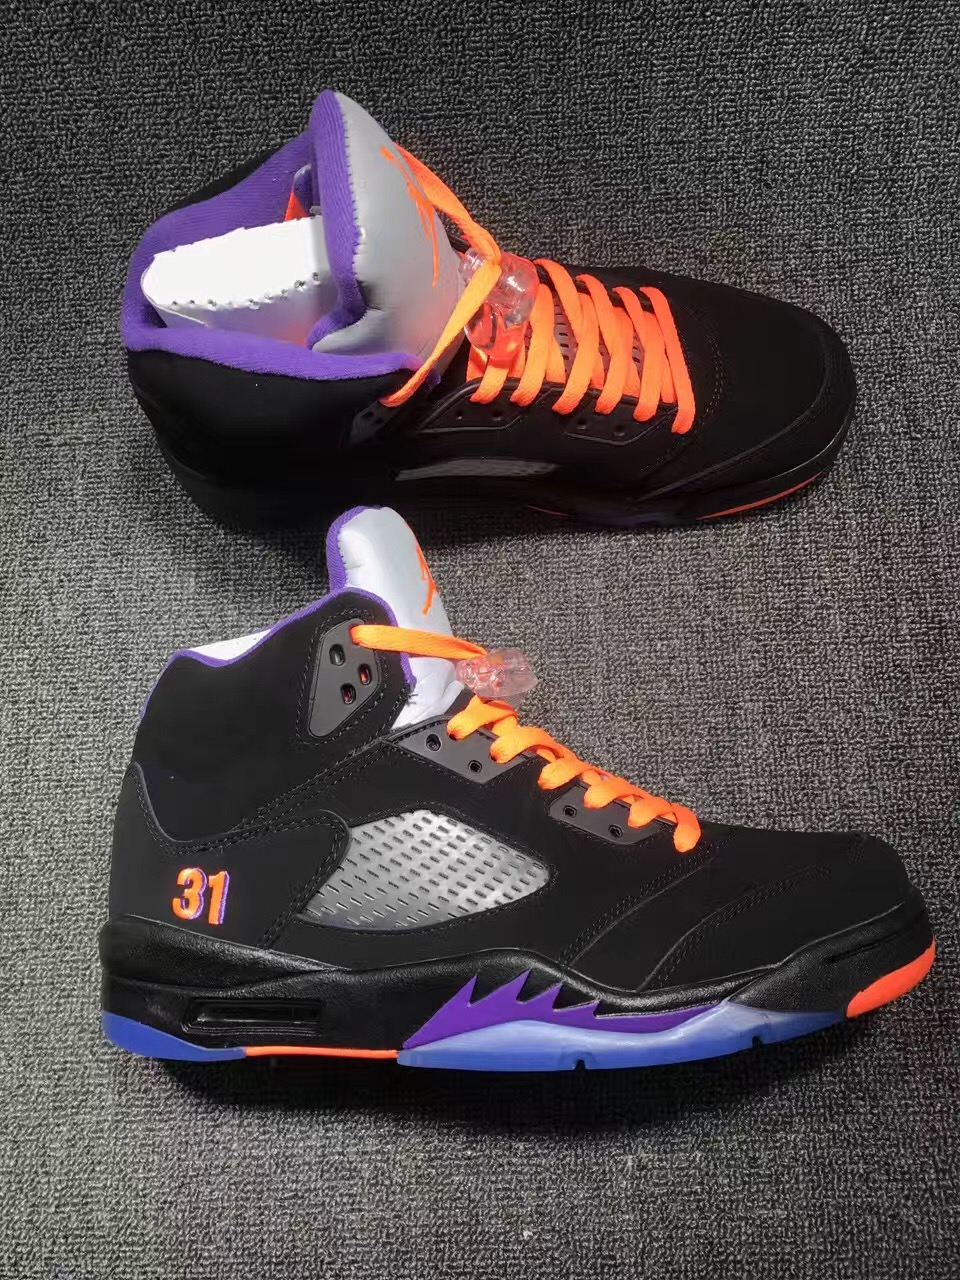 Authentic Air Jordan 5 Shawn Marion PE - SirSneaker.cn 861a554bf